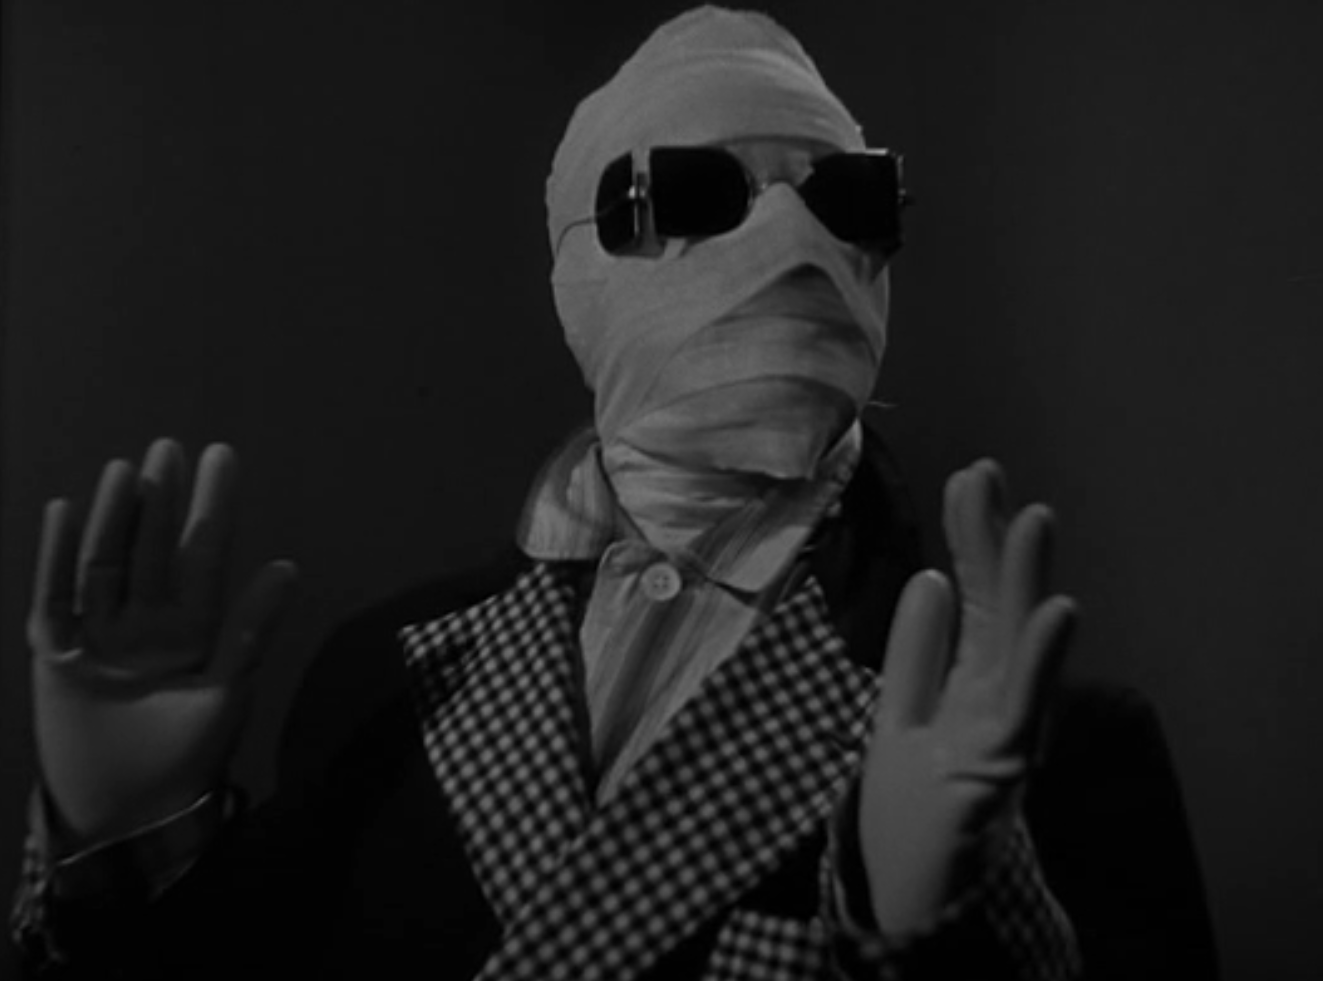 the invisible man 1933 review claude rains and gloria invisible man 1933 pre code universal horror